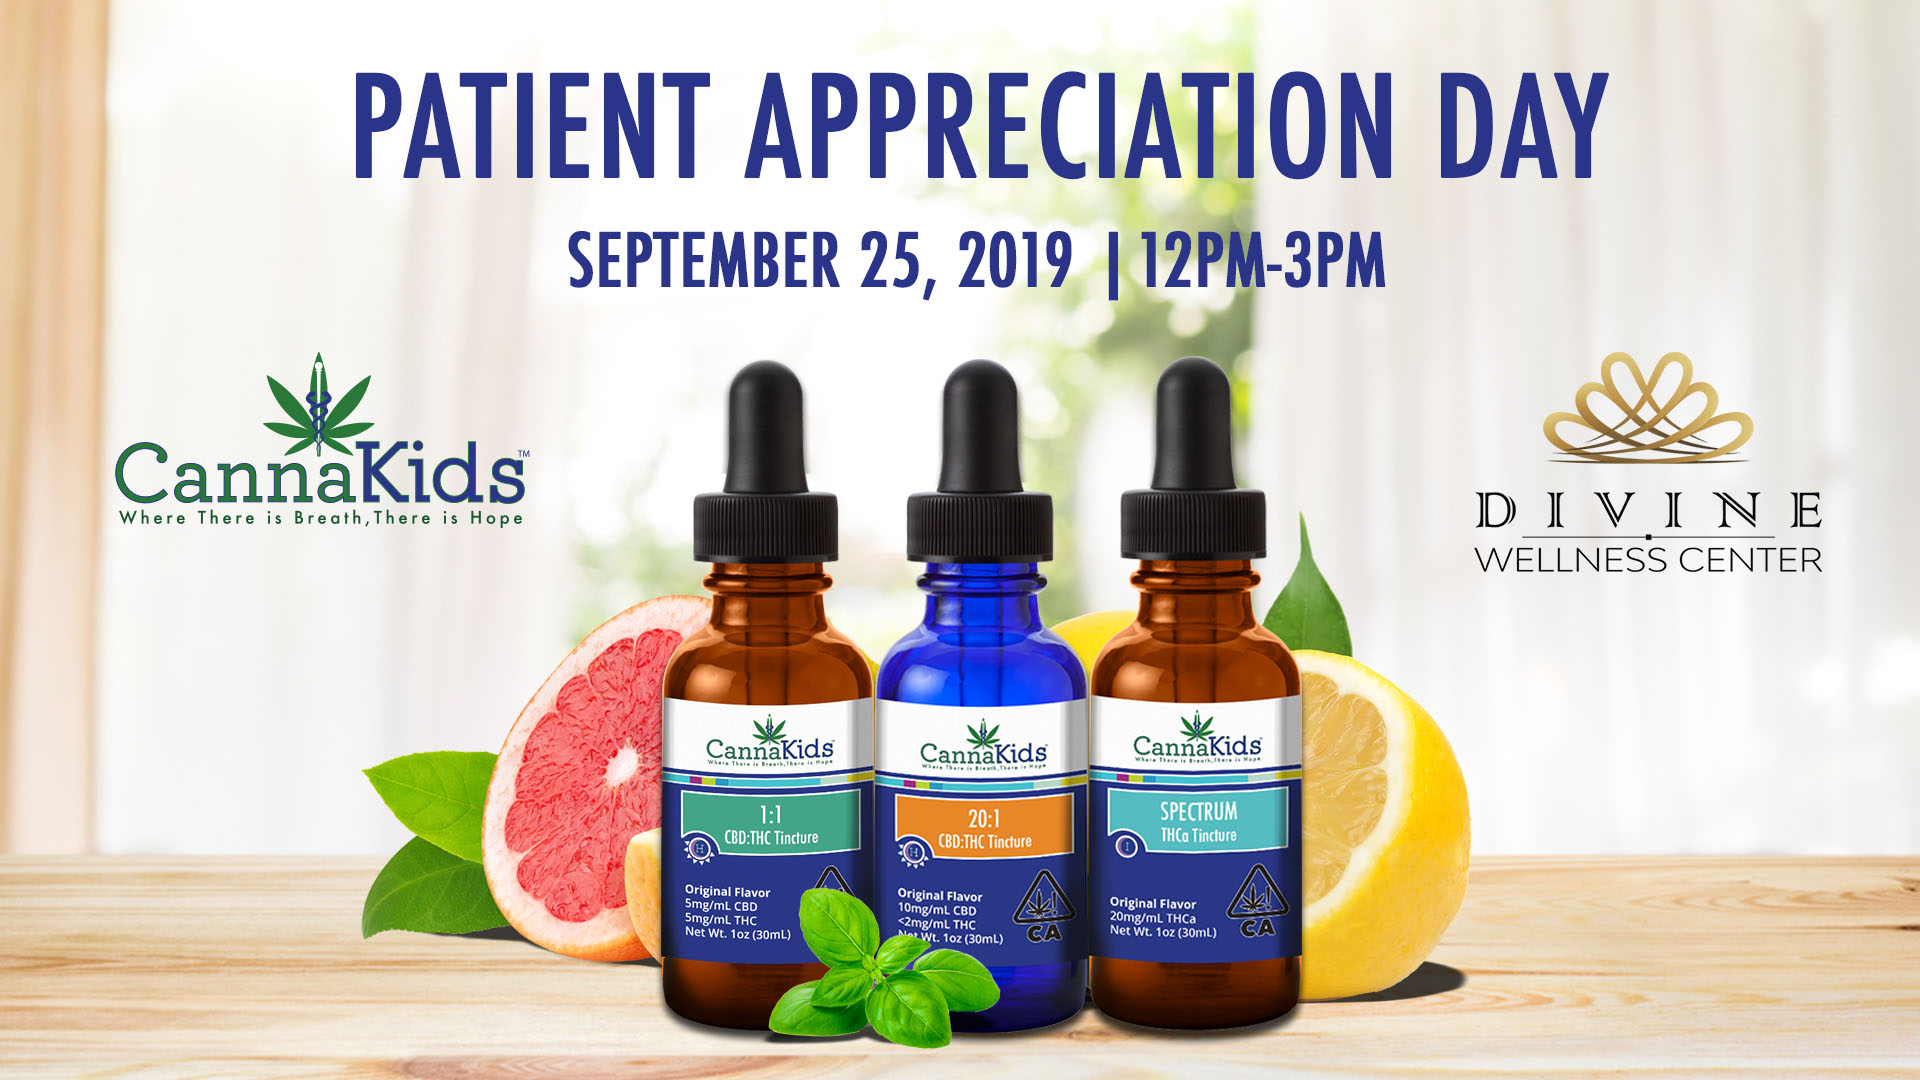 CannaKids Patient Appreciation Day at Divine Wellness Center